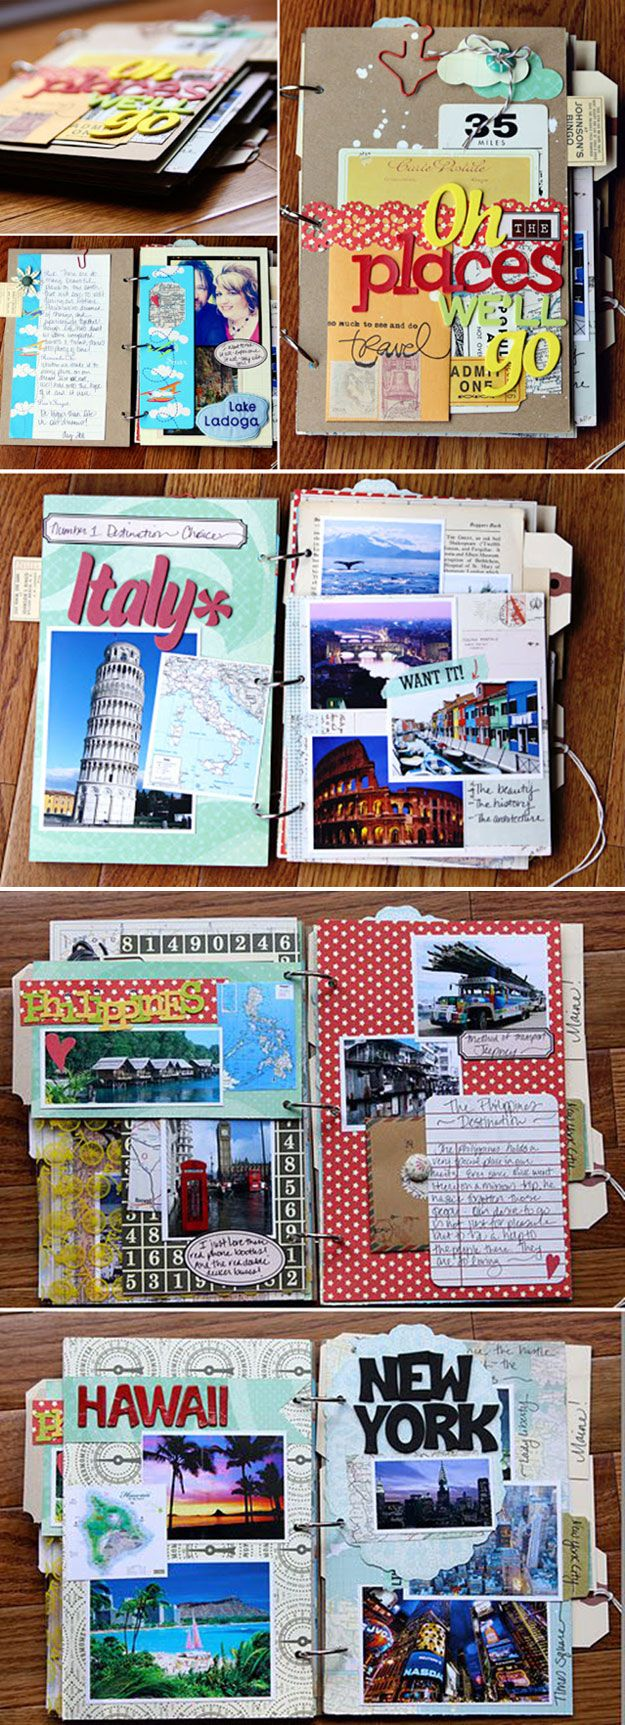 25 Best Ideas About Travel Scrapbook On Pinterest Journal Scrapbook Scrap Books And